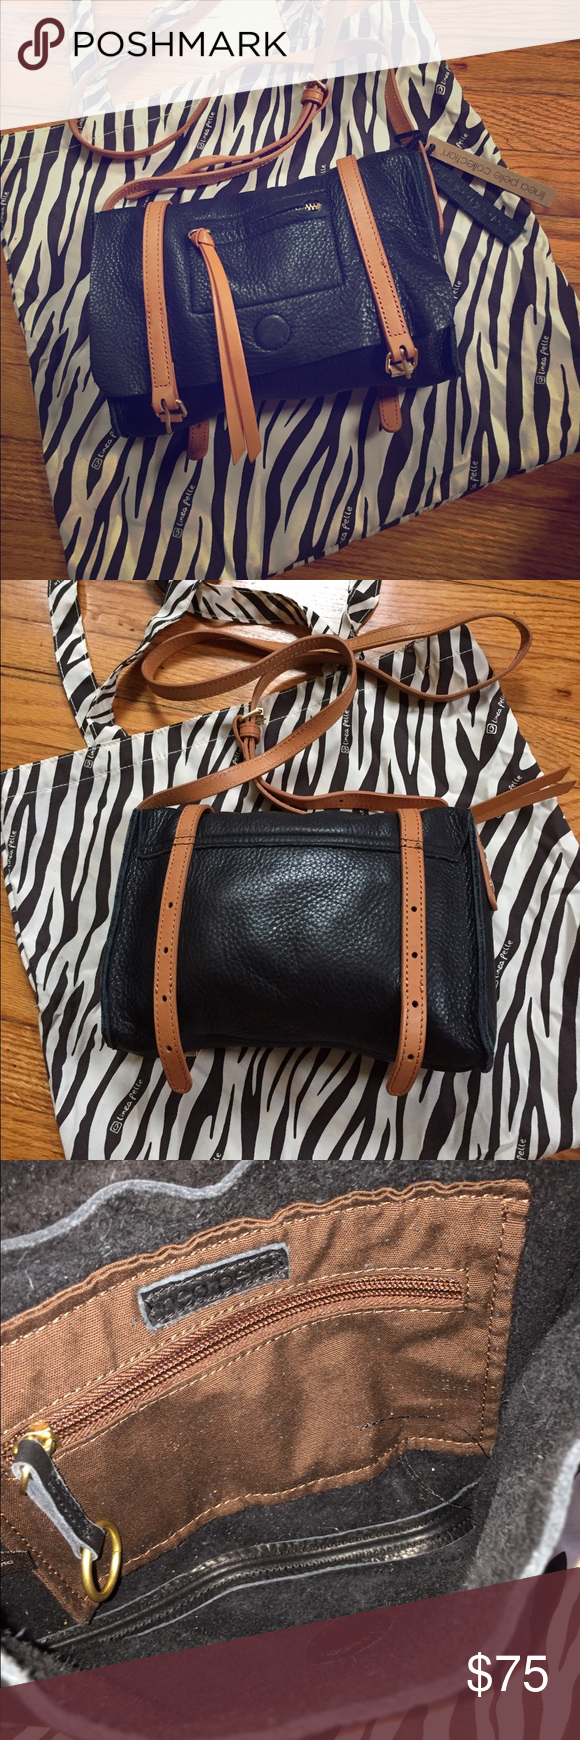 """Lina Pelle leather crossbody bag Lina Pelle leather adjustable crossbody/shoulder bag. 10""""x7"""". Inside and outside zippered pocket. Super soft leather. Features an adorable """"loose"""" buckle look on the bottom! Used only once. Excellent condition. Comes with dust bag that can also be used as a tote. :) Lina Pelle Bags Crossbody Bags"""